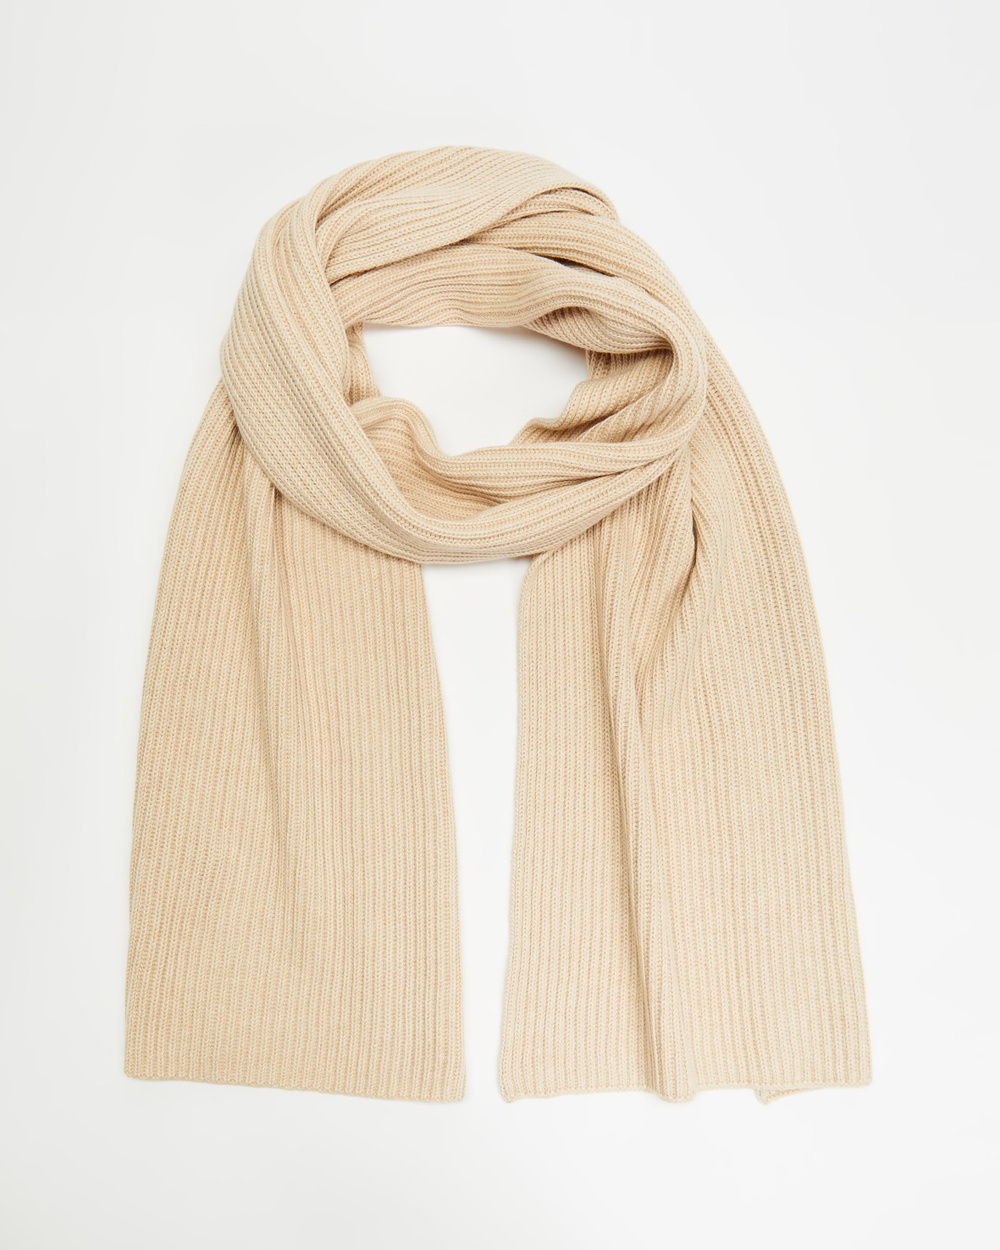 AERE Organic Cotton Knit Scarf Scarves & Gloves Toast